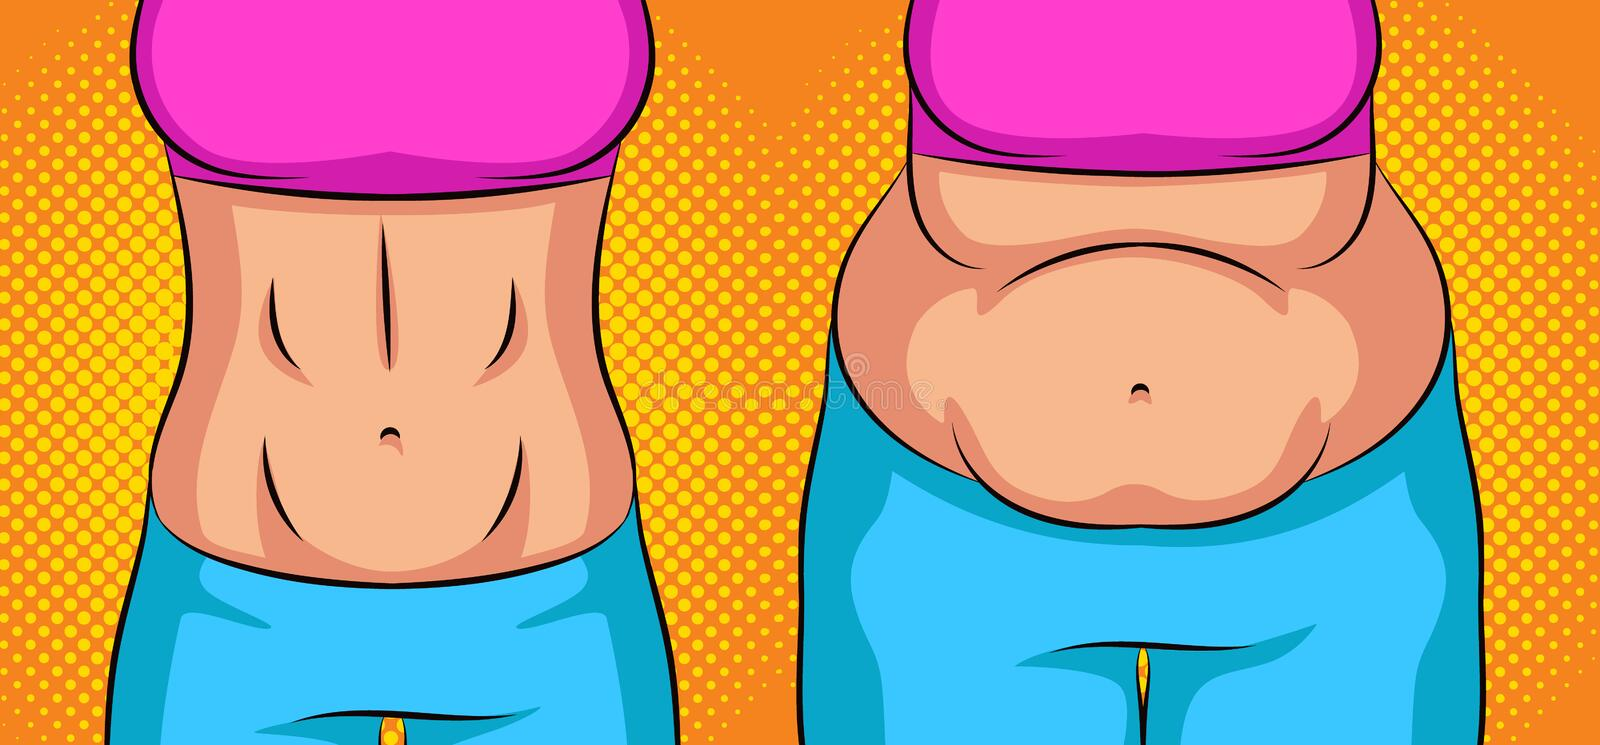 Color  pop art style  illustration girl before and after weight loss. Flat stomach vs the fat belly. Concept royalty free illustration